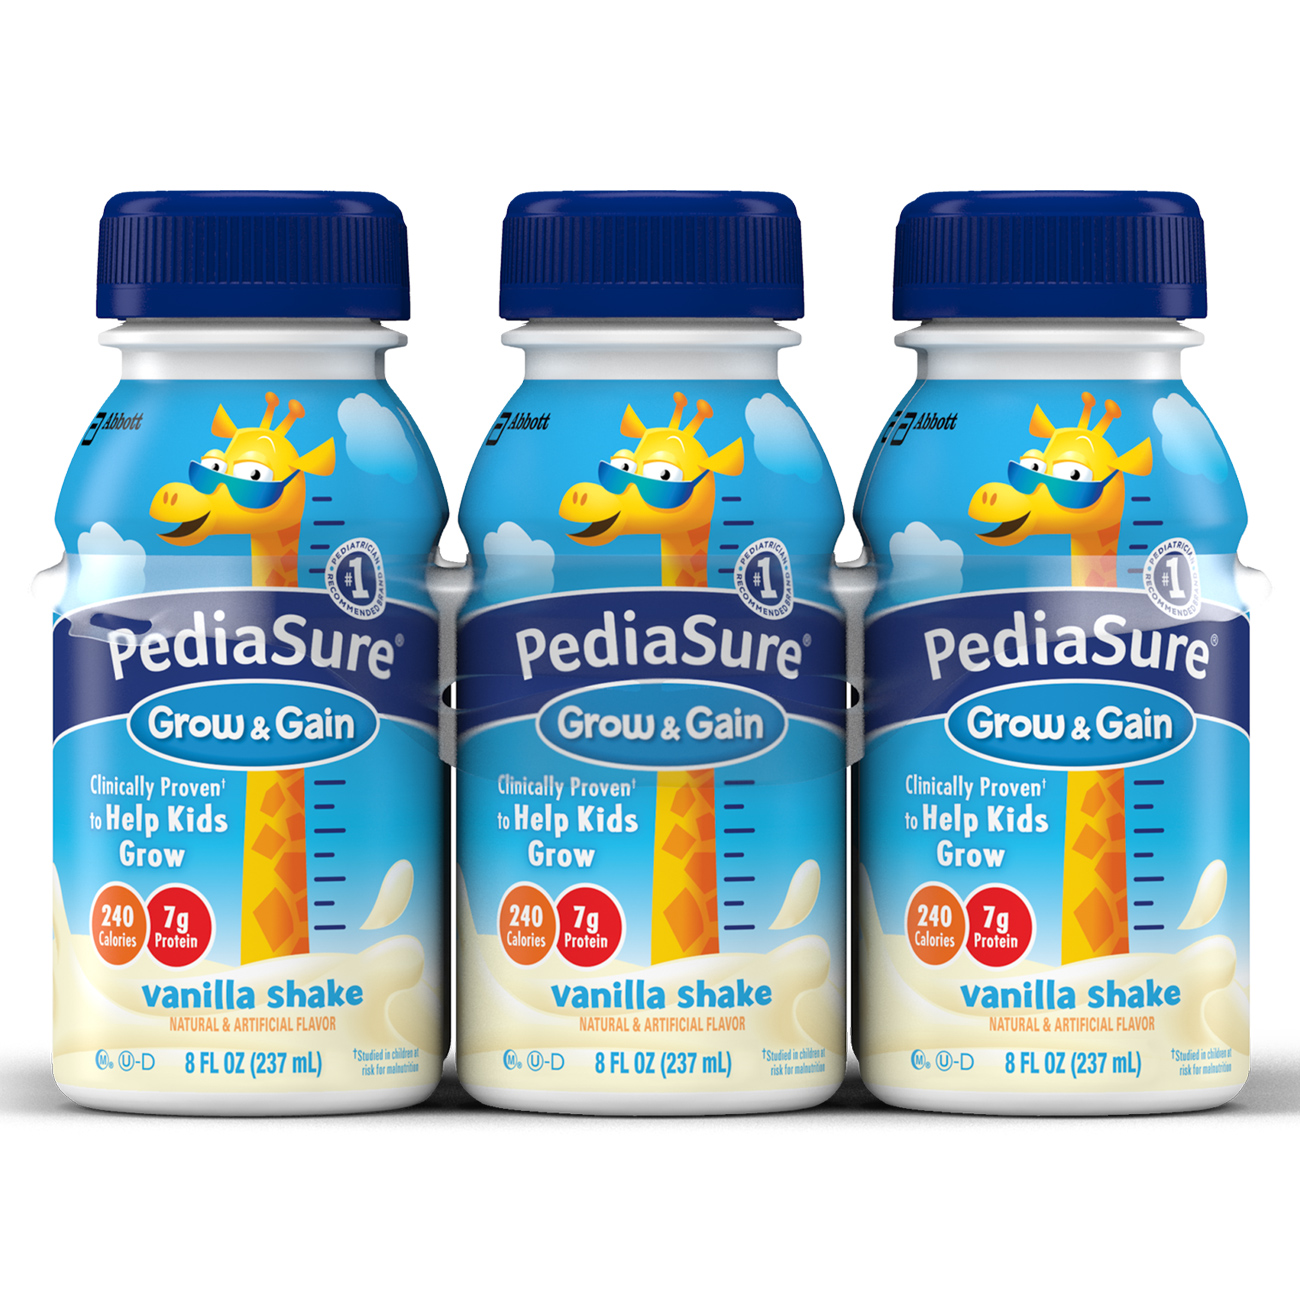 PediaSure Nutrition Drink, Vanilla Shake, 8 fl oz (4-6 Packs)